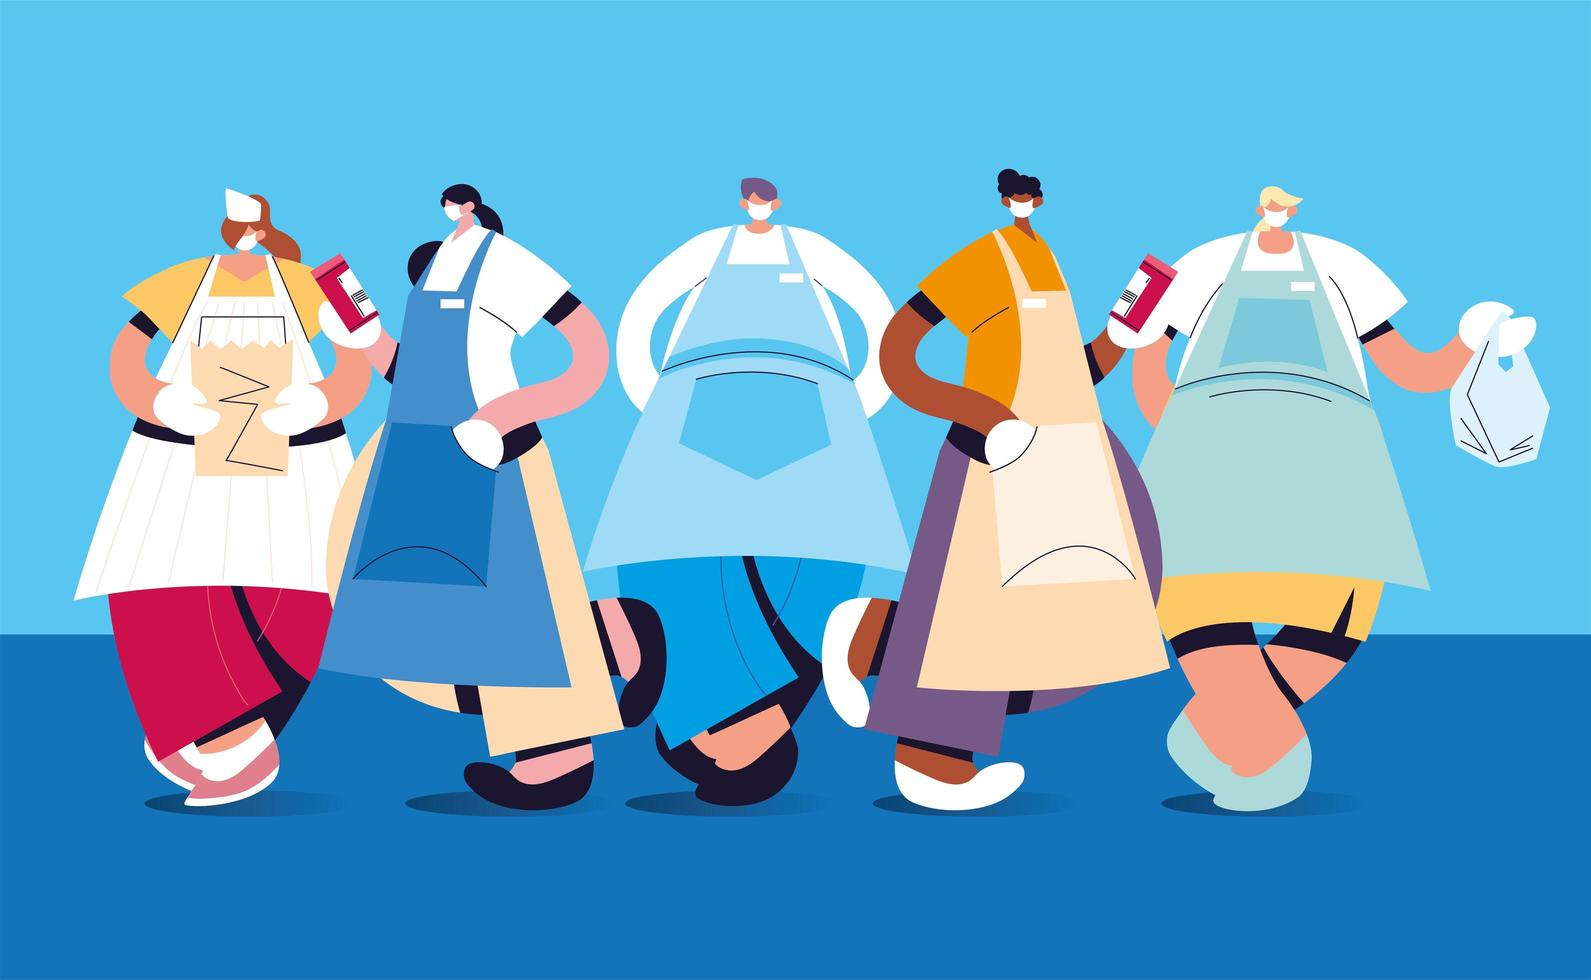 Group of waiters with face mask and uniform vector